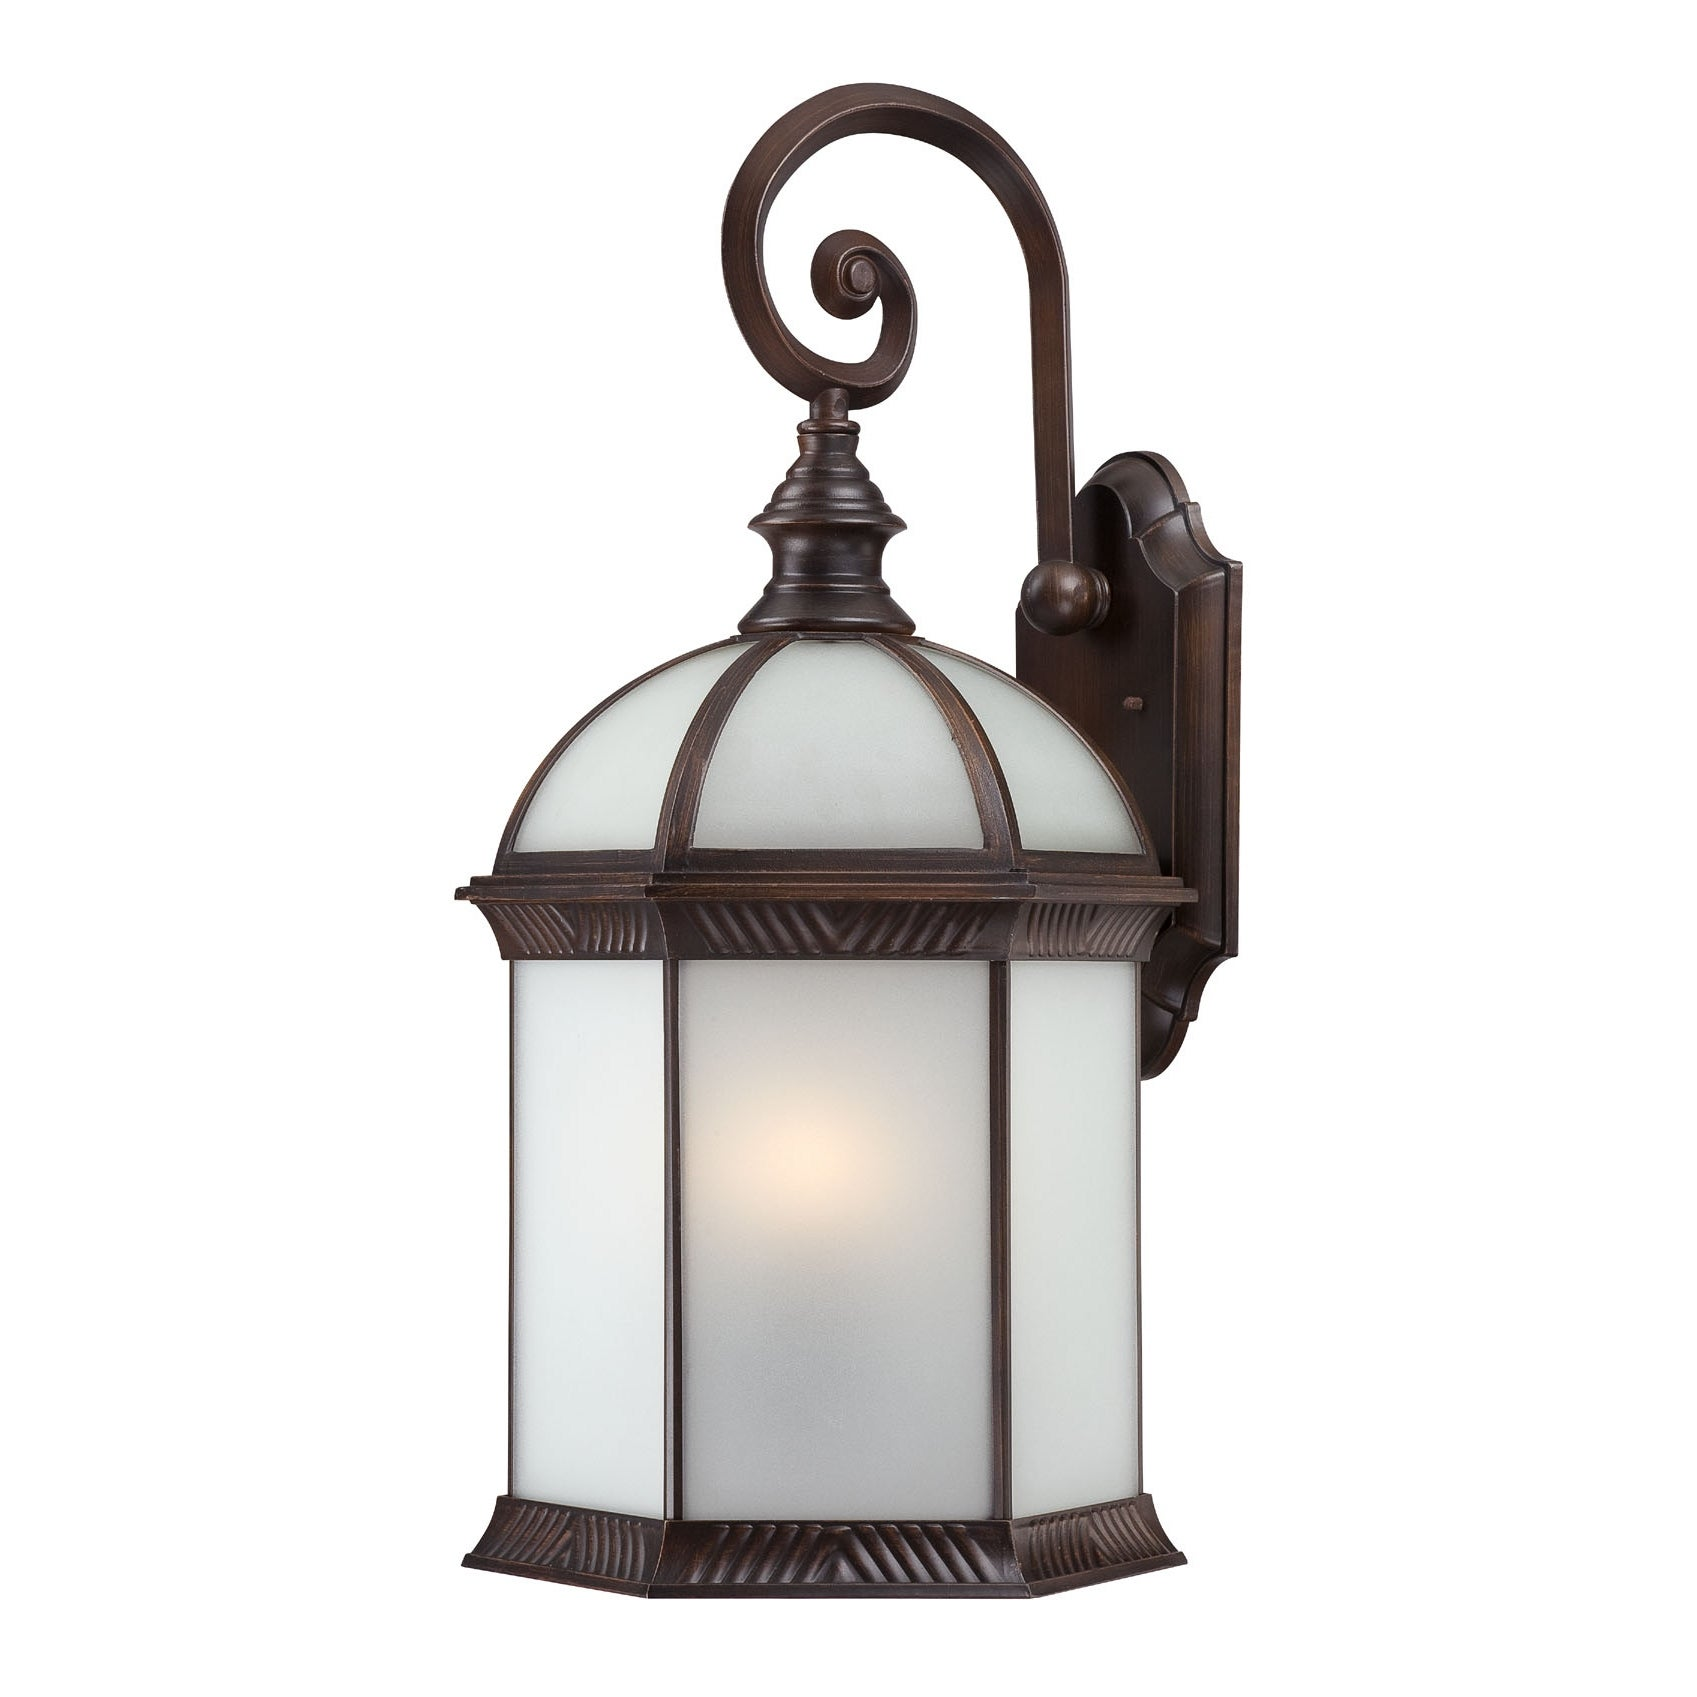 Nuvo Boxwood 1-light Rustic Bronze 26-inch Wall Sconce